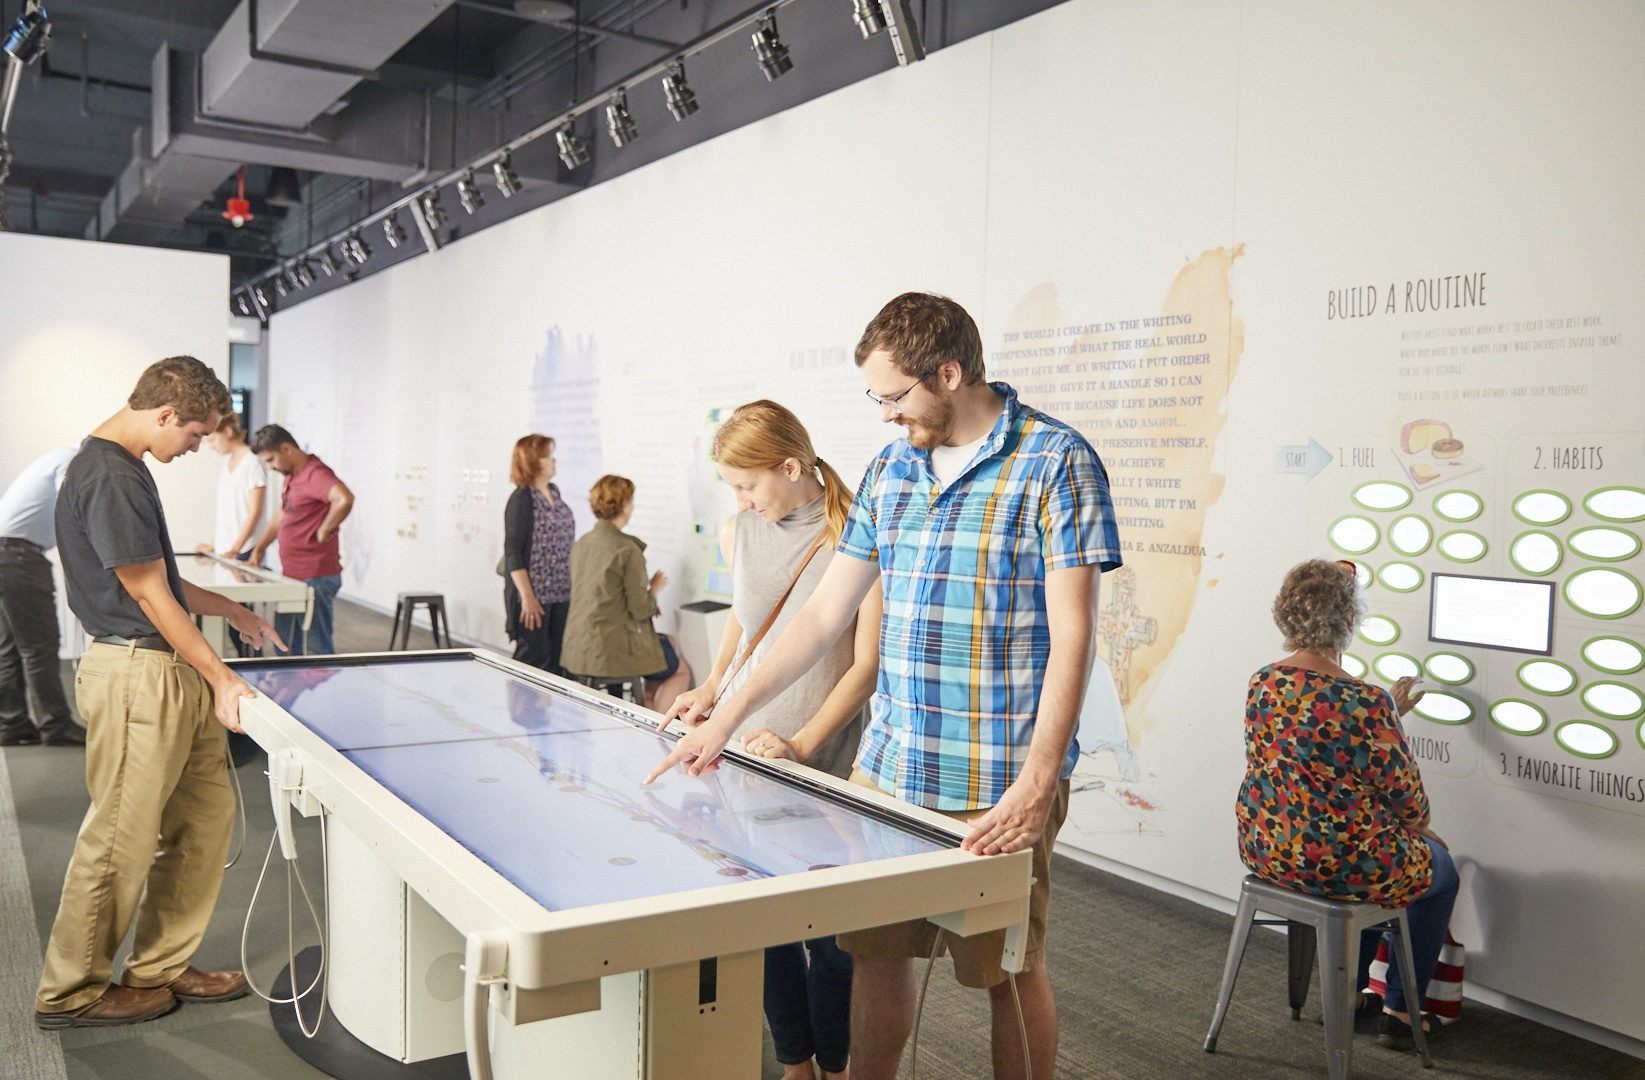 Visitors interacting with the Featured Works tables exhibit in the Mind of a Writer gallery